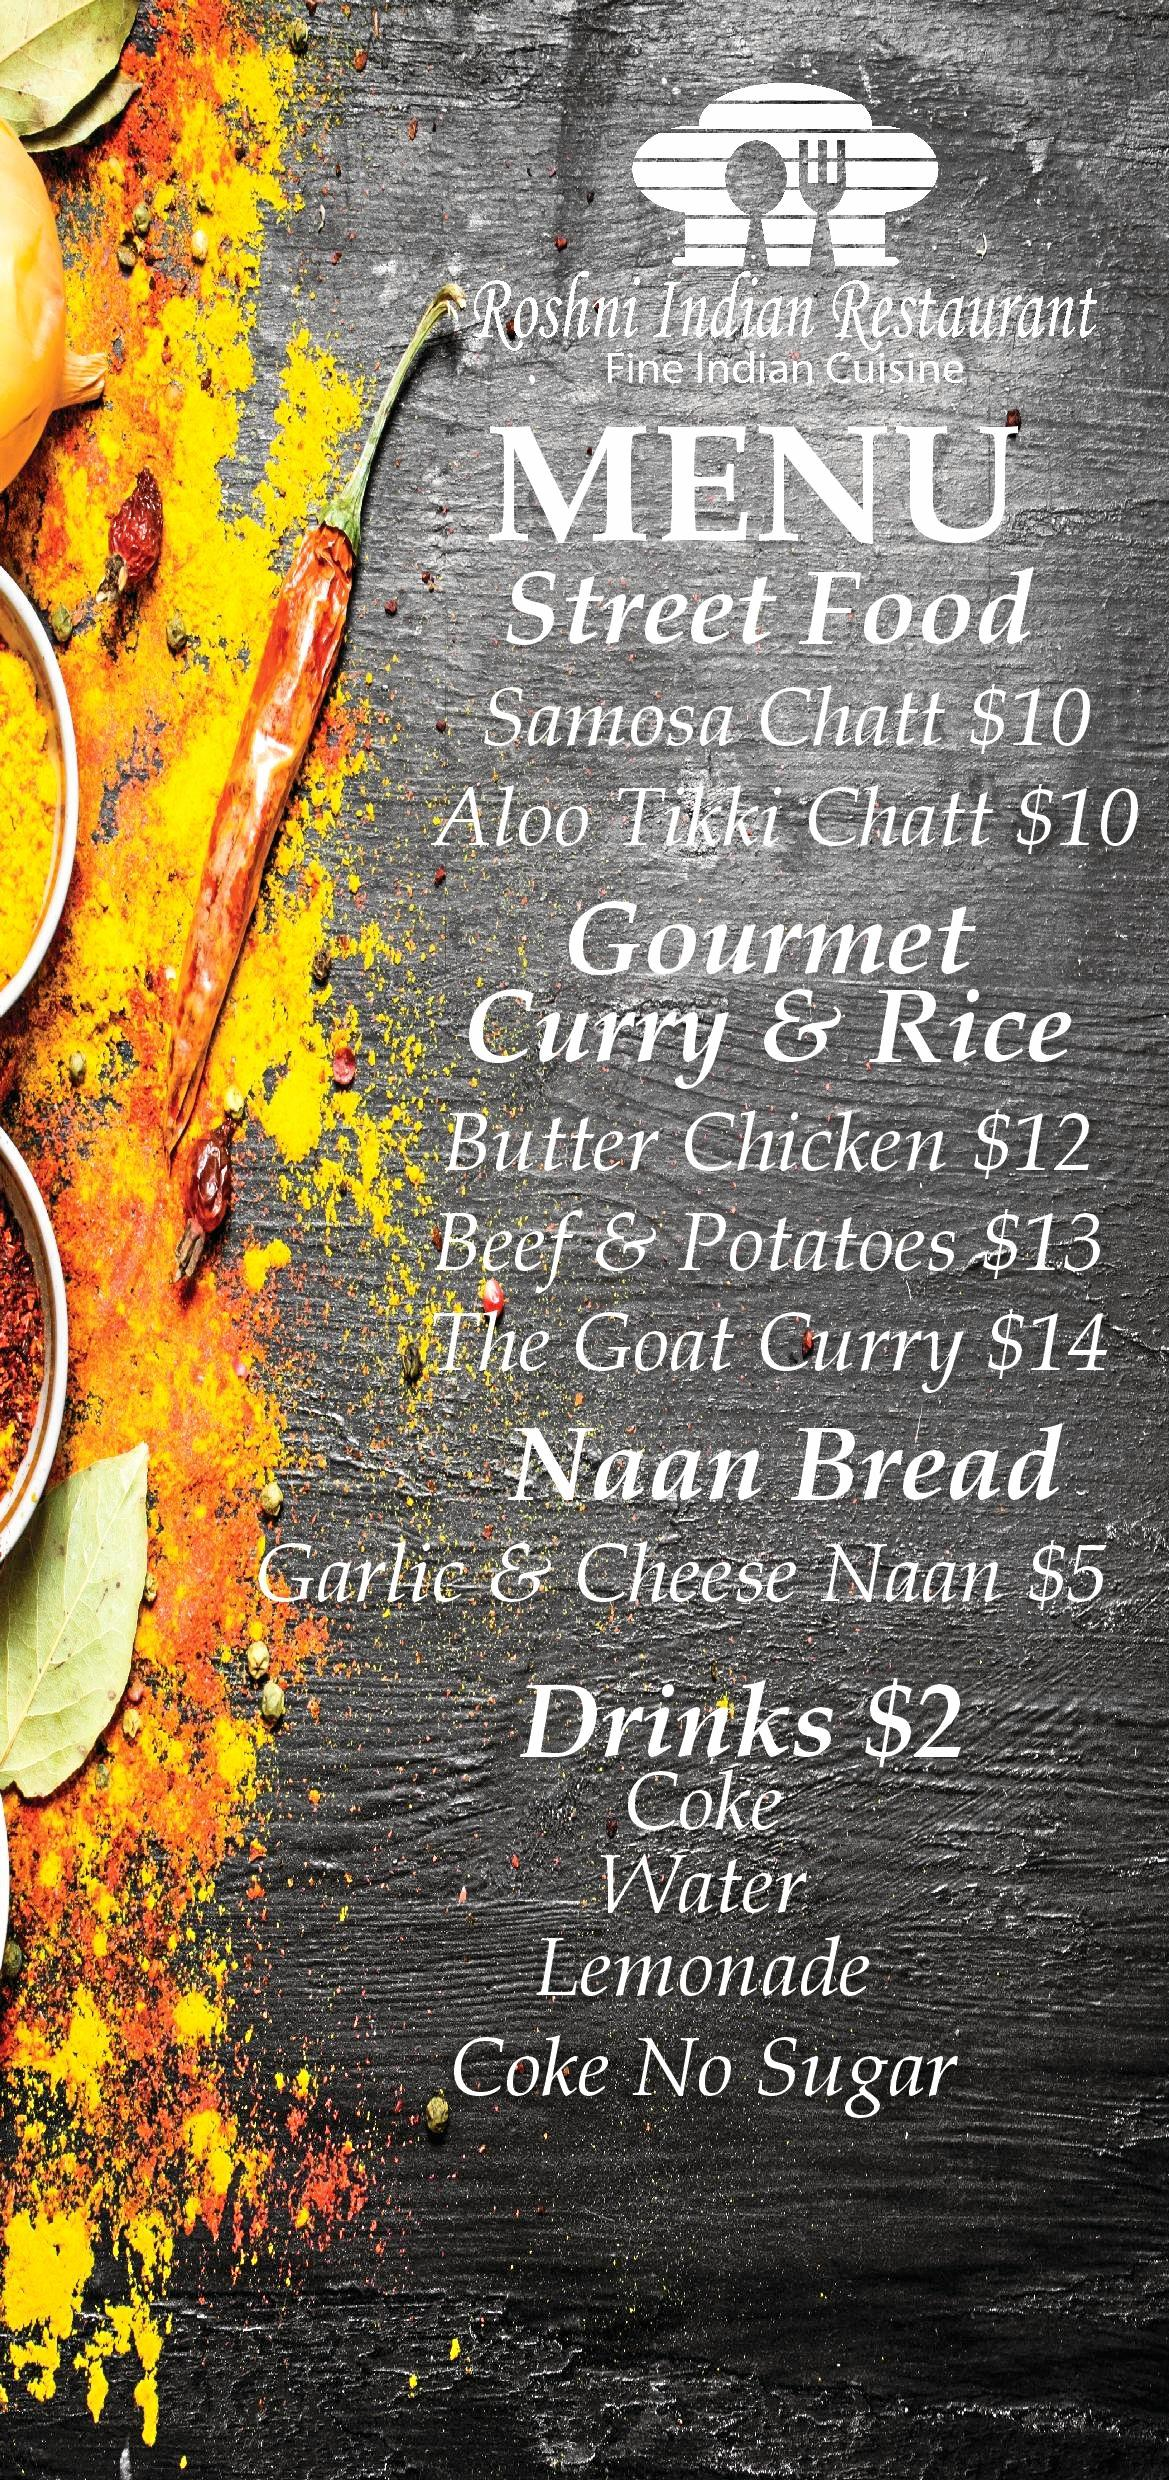 Roshni Indian's complete Wine and Food Day menu